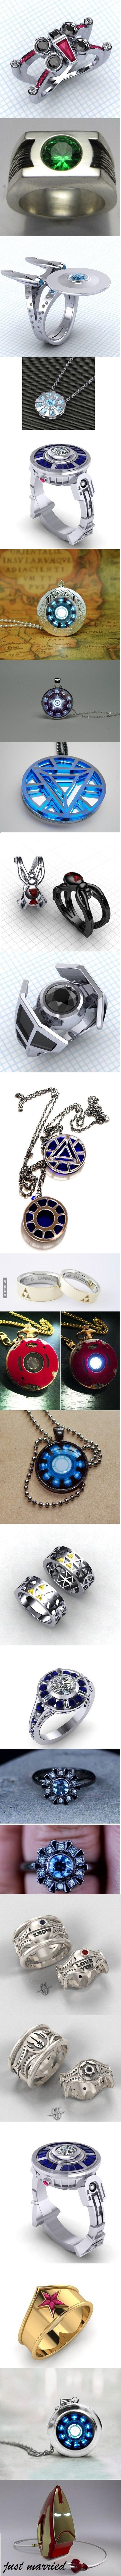 """Kris513: """"The architecture of these rings is sooooo cool (and in some cases, awesomely nerdy!). I can't decide which one I want! (^^,)"""" *Note, ignore the last image. it just ruins this pretty post*"""